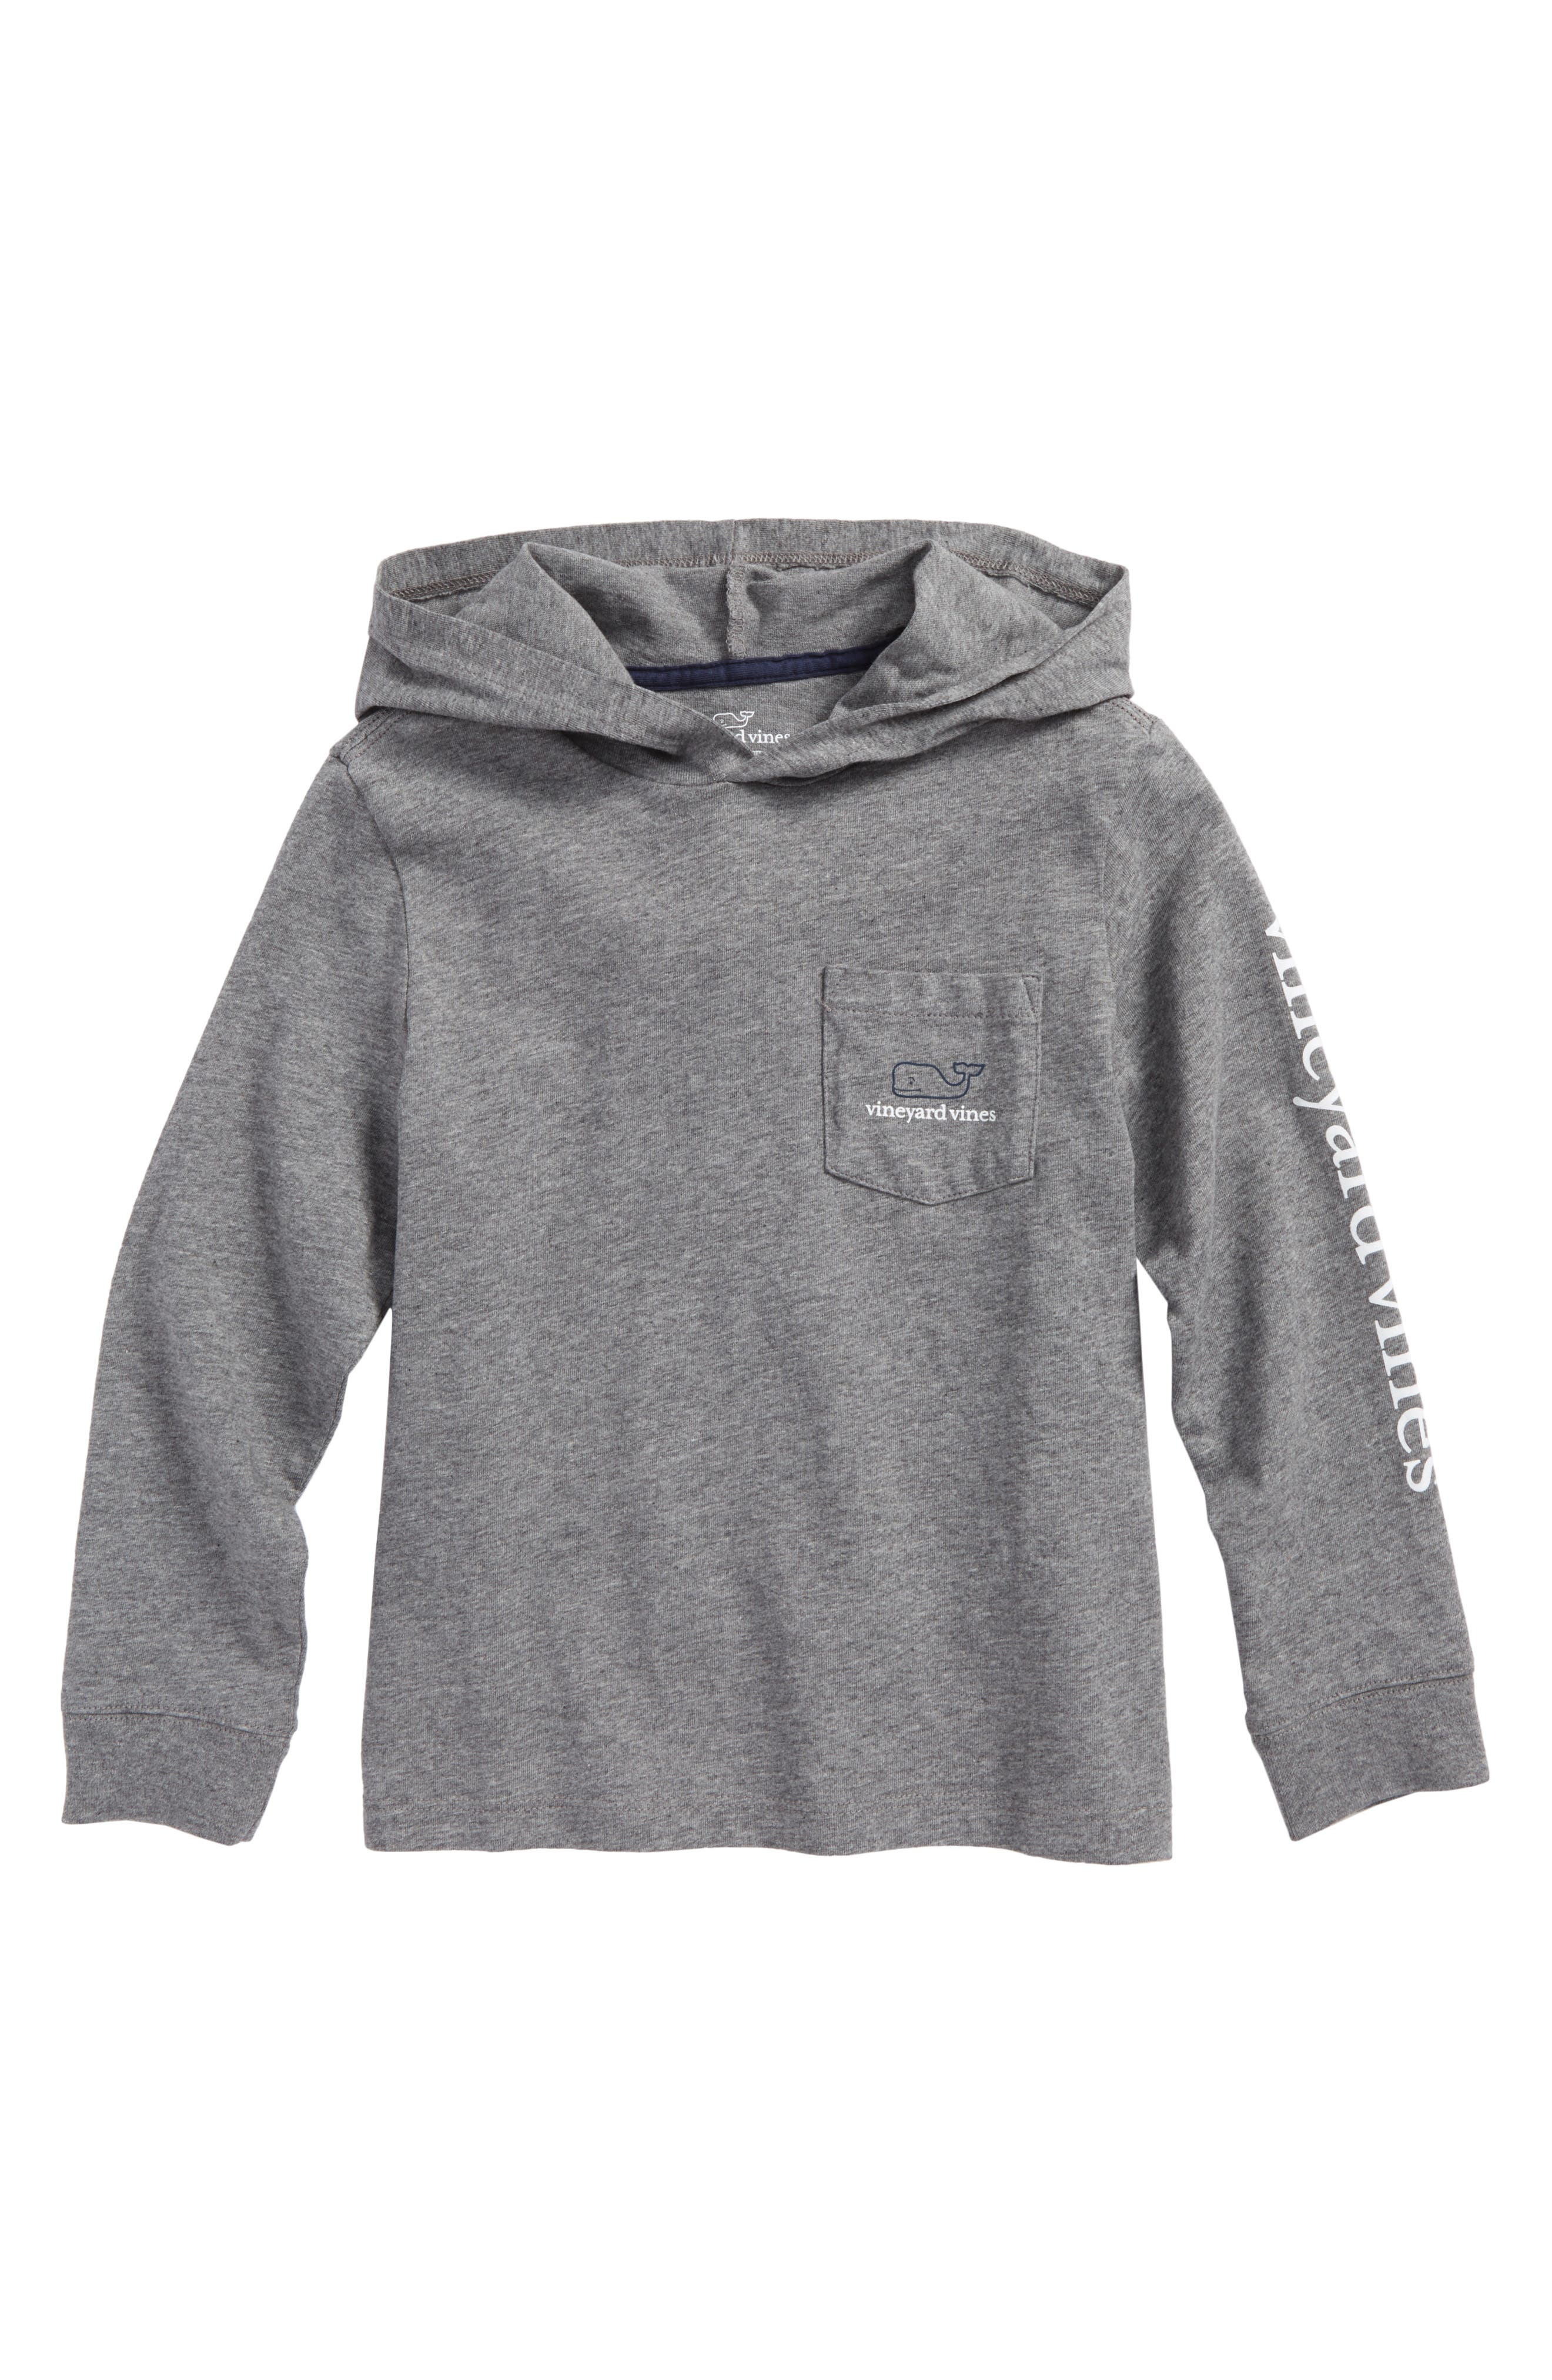 Two-Tone Whale Hooded T-Shirt,                             Main thumbnail 1, color,                             030